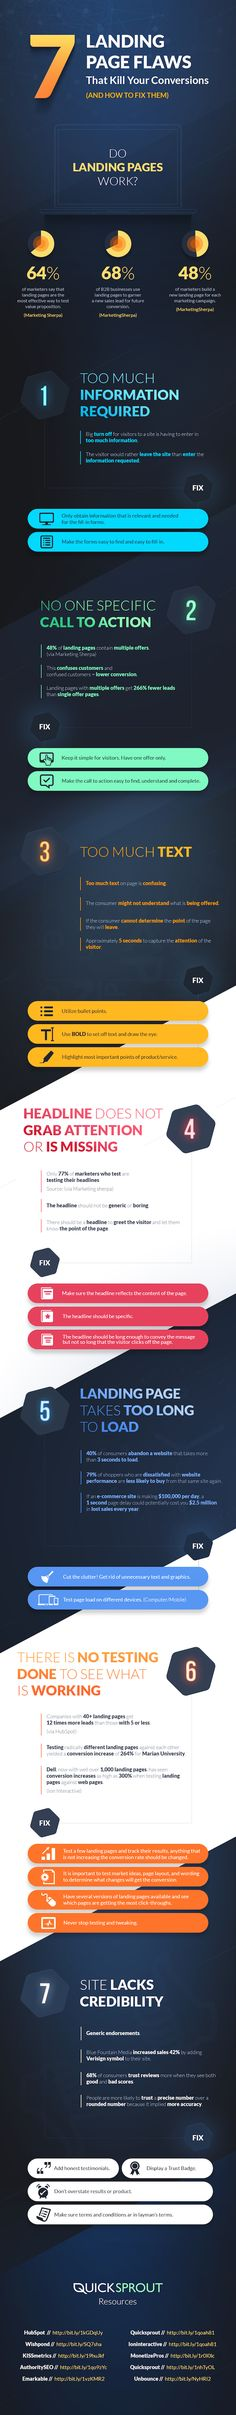 These Landing Page Flaws Could Be Hurting Your Conversion Rates, an #infographic by @lkolo25 #web #design